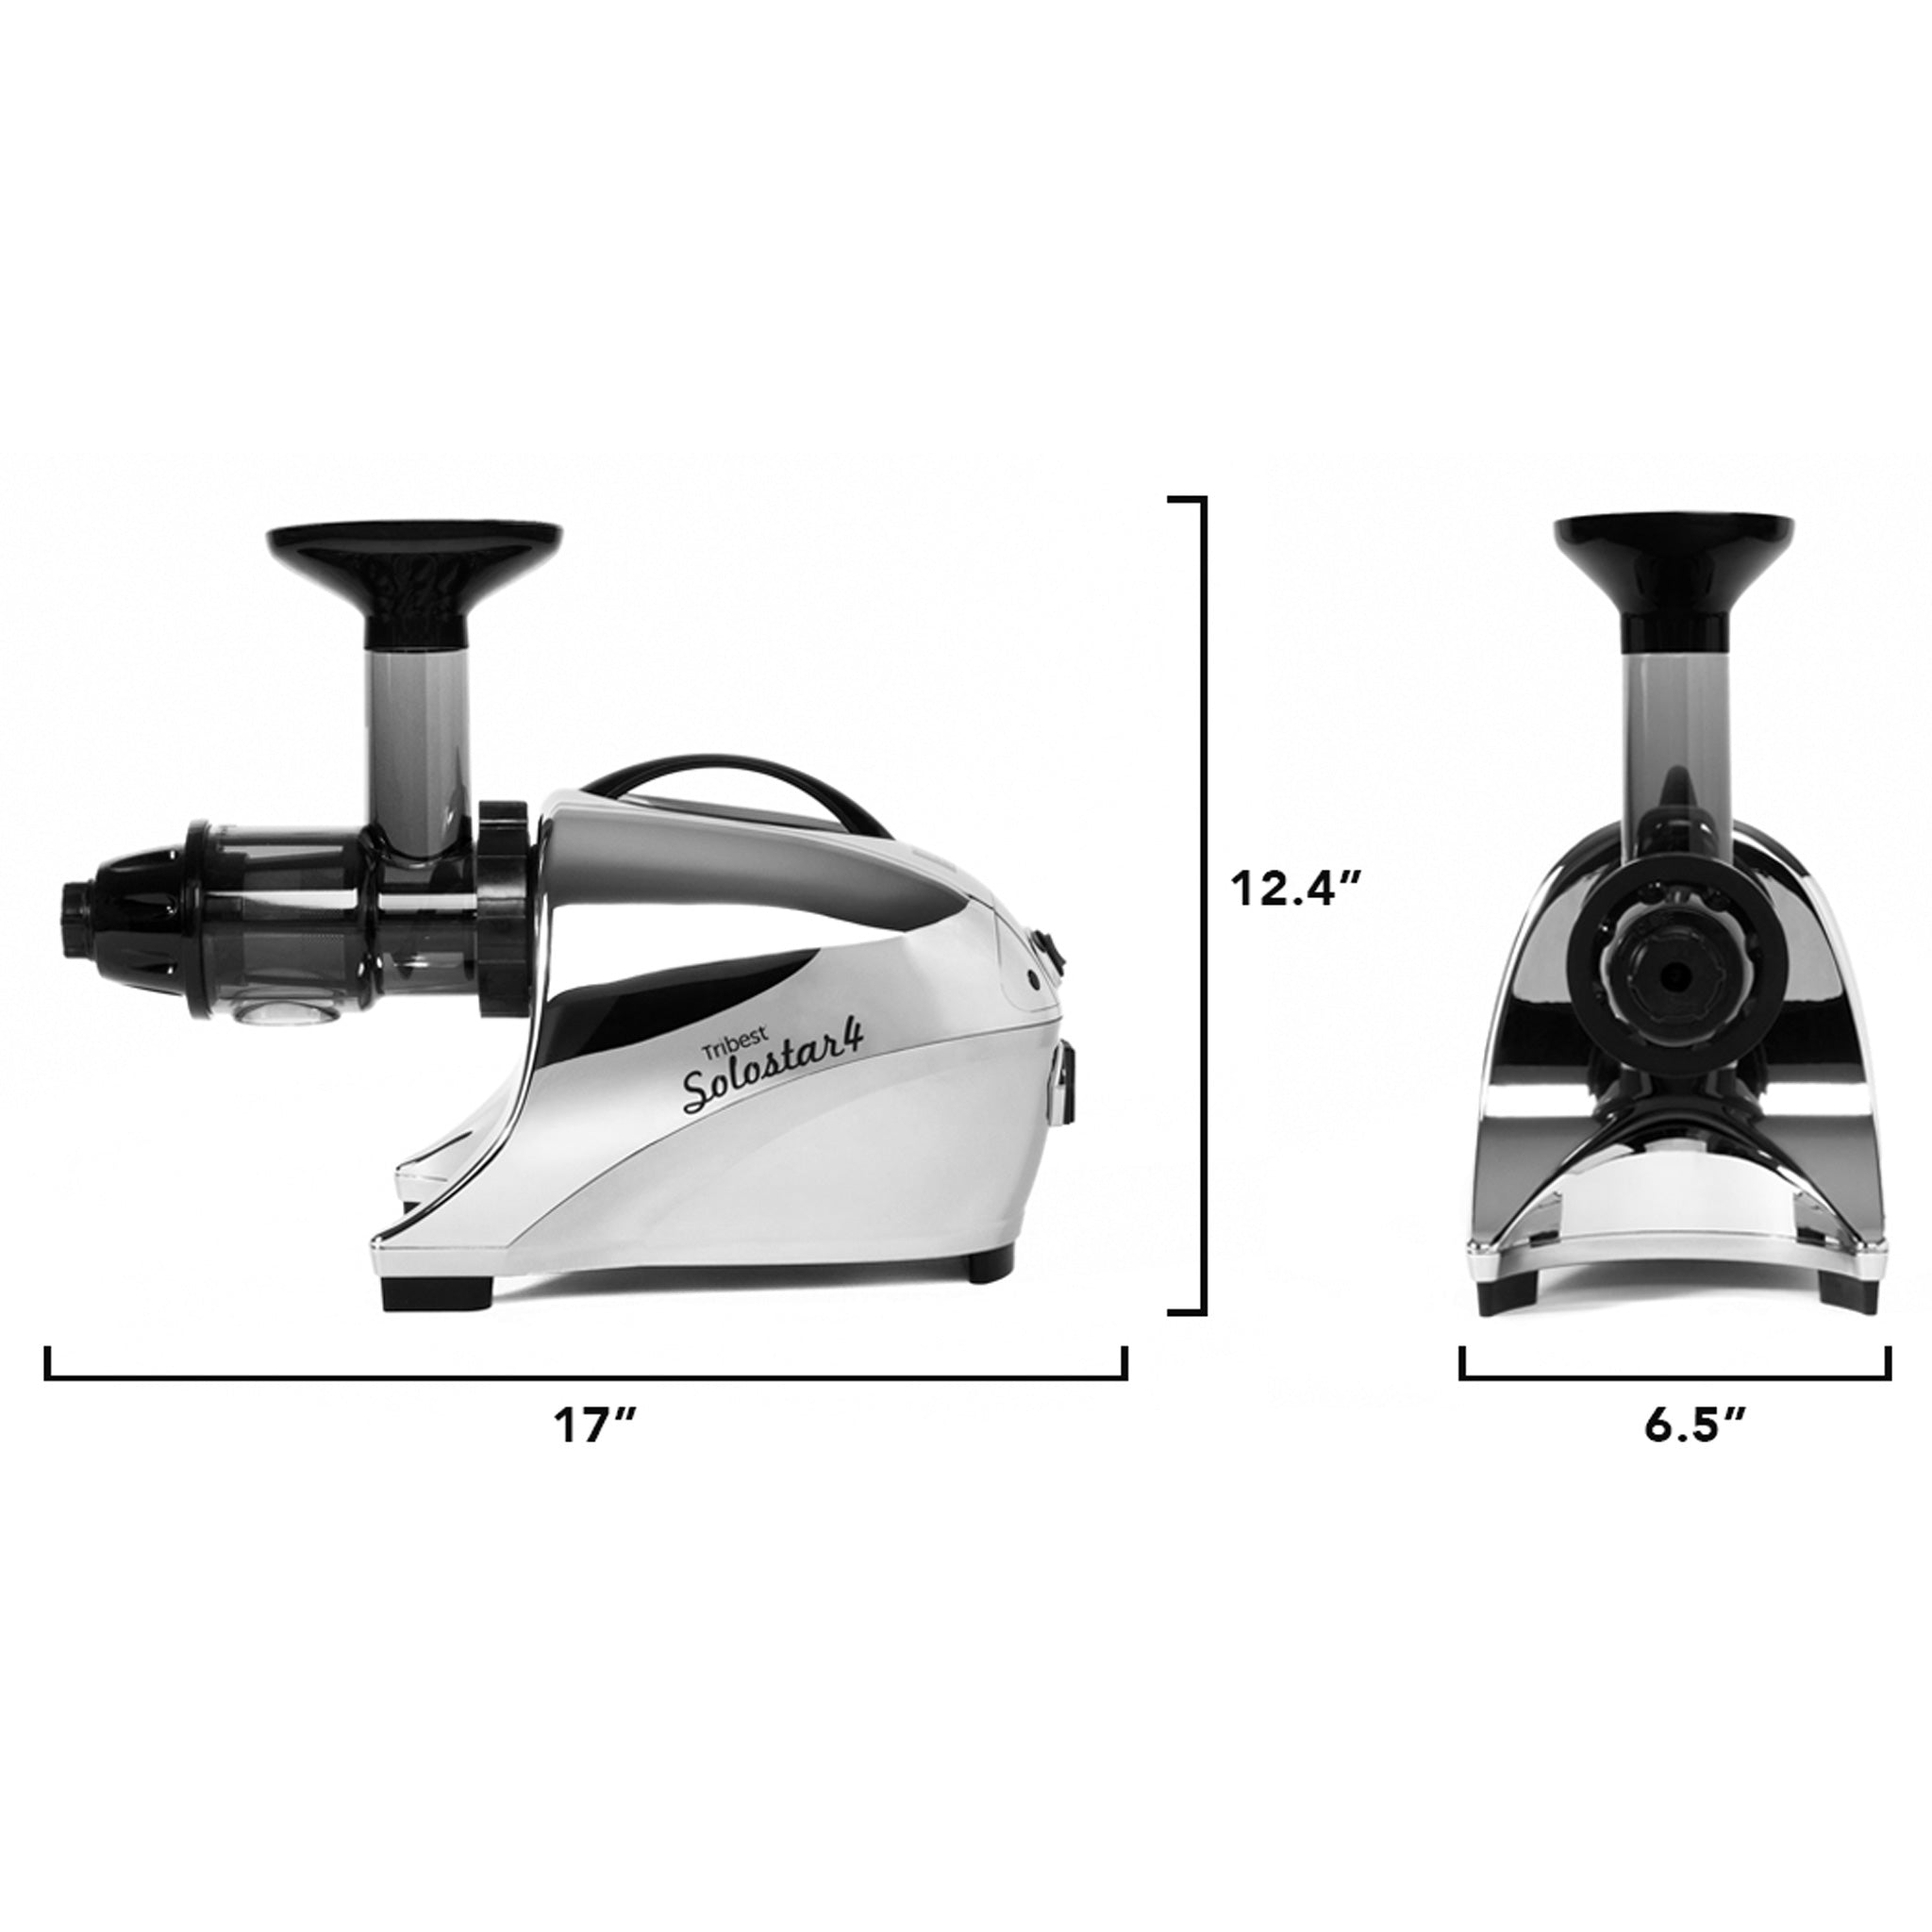 "Solostar® 4 Horizontal Slow Masticating Juicer in Chome SS4-4250-B - Size 17"" W x 6.5"" D x 12.4"" H - Tribest"